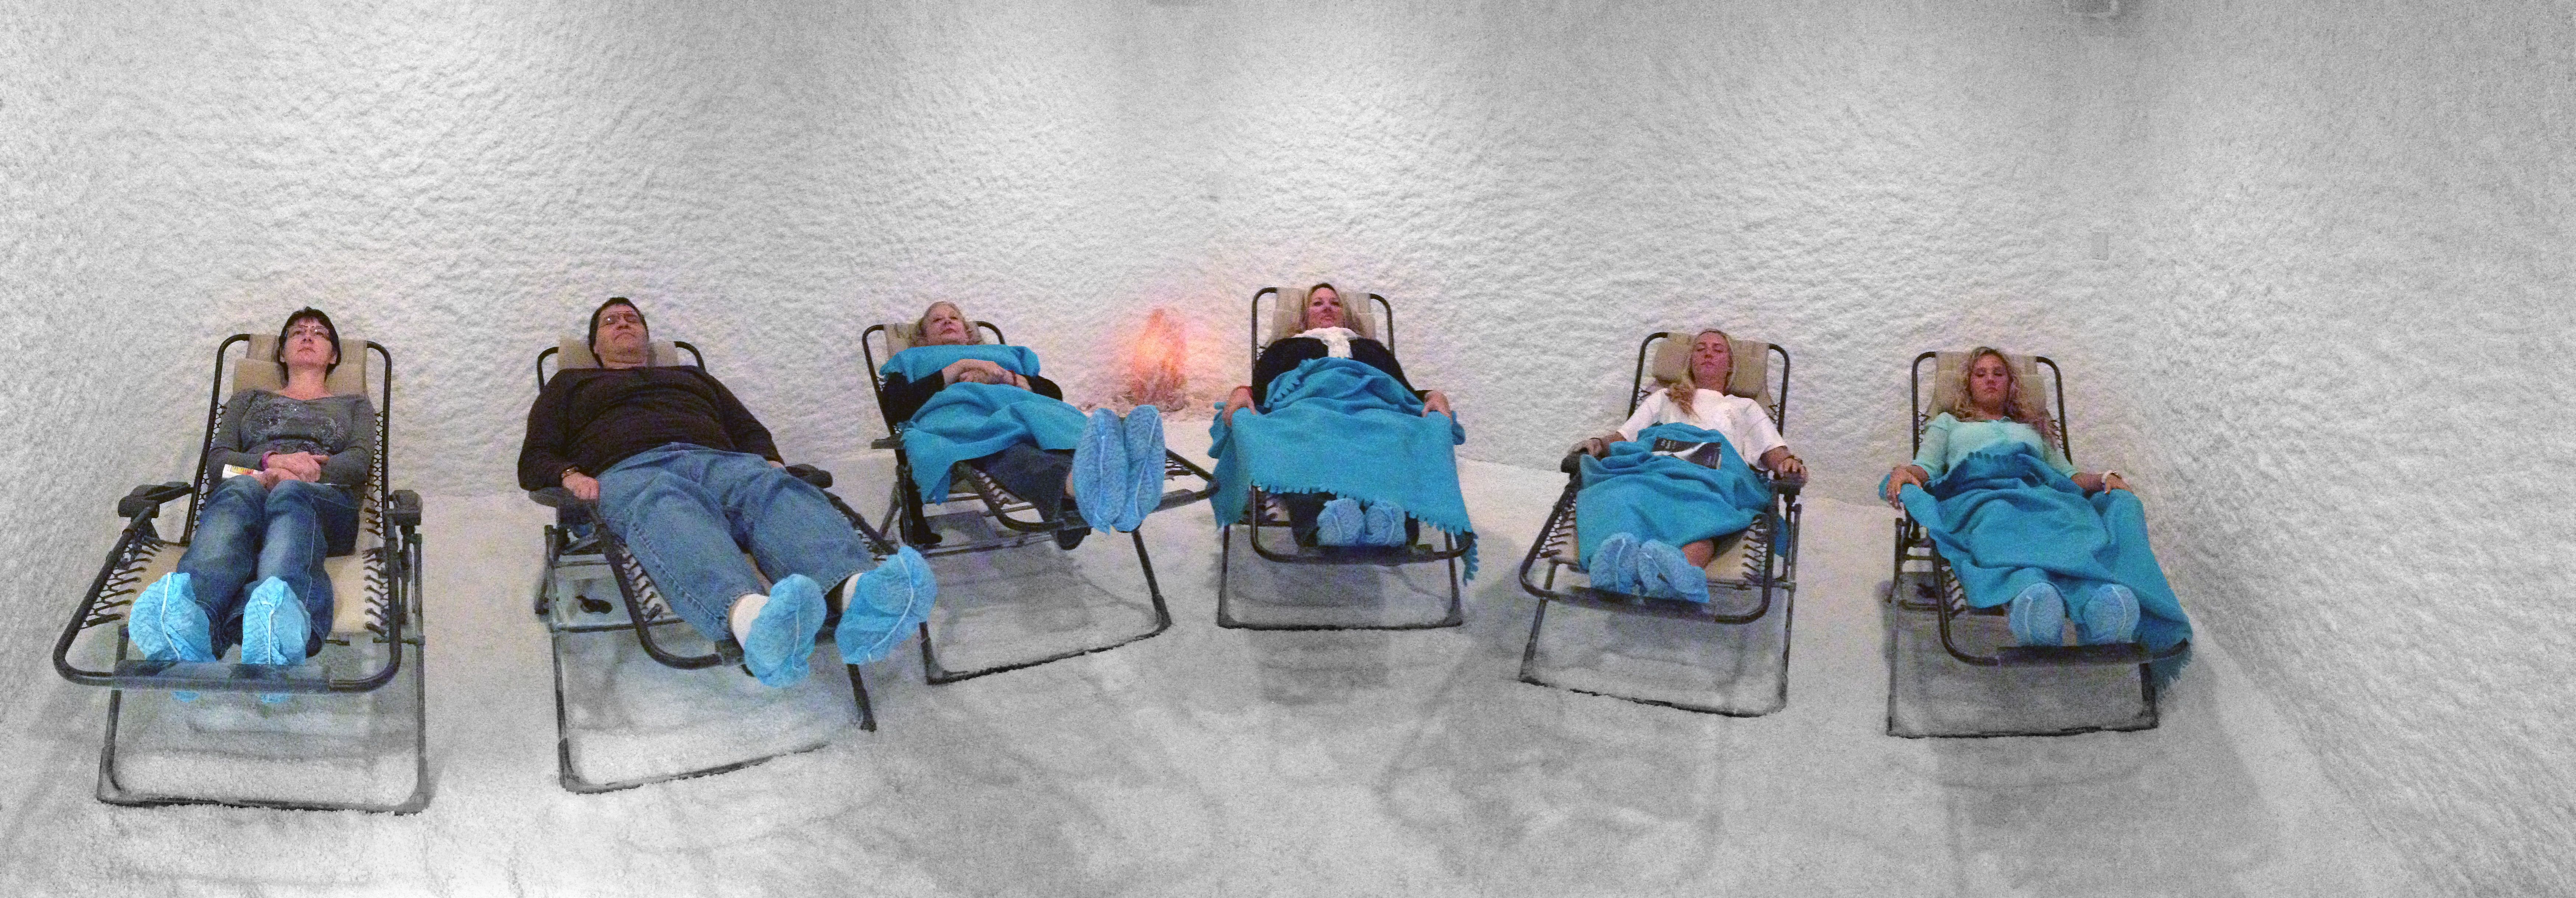 Come Relax In Zero Gravity Chairs In Our Salt Rooms